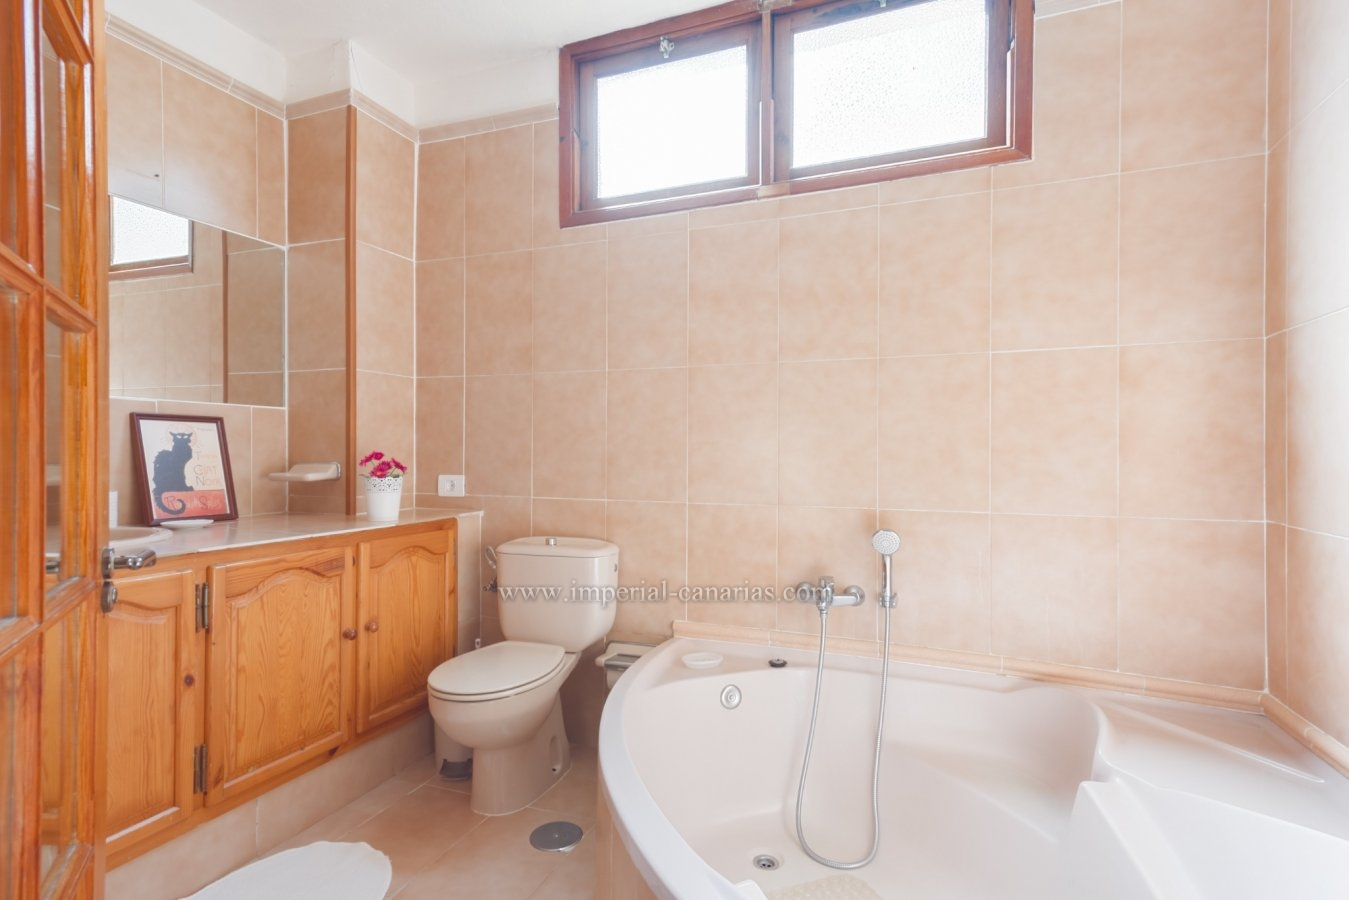 Charming house partially renovated in a quiet area with a lot of privacy